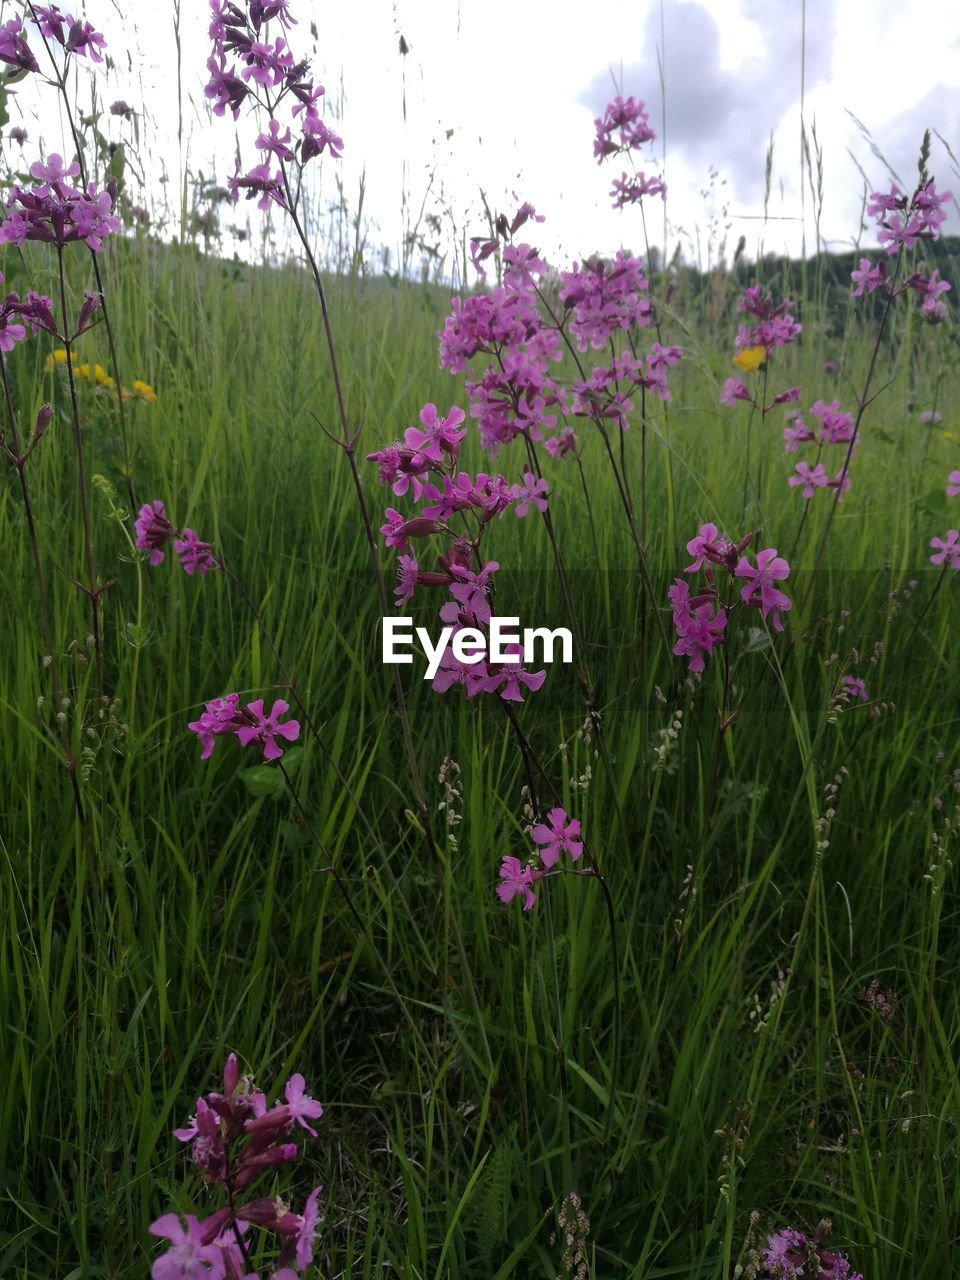 flower, flowering plant, plant, beauty in nature, freshness, growth, land, pink color, vulnerability, fragility, nature, field, no people, close-up, sky, day, petal, green color, tranquility, outdoors, purple, flower head, flowerbed